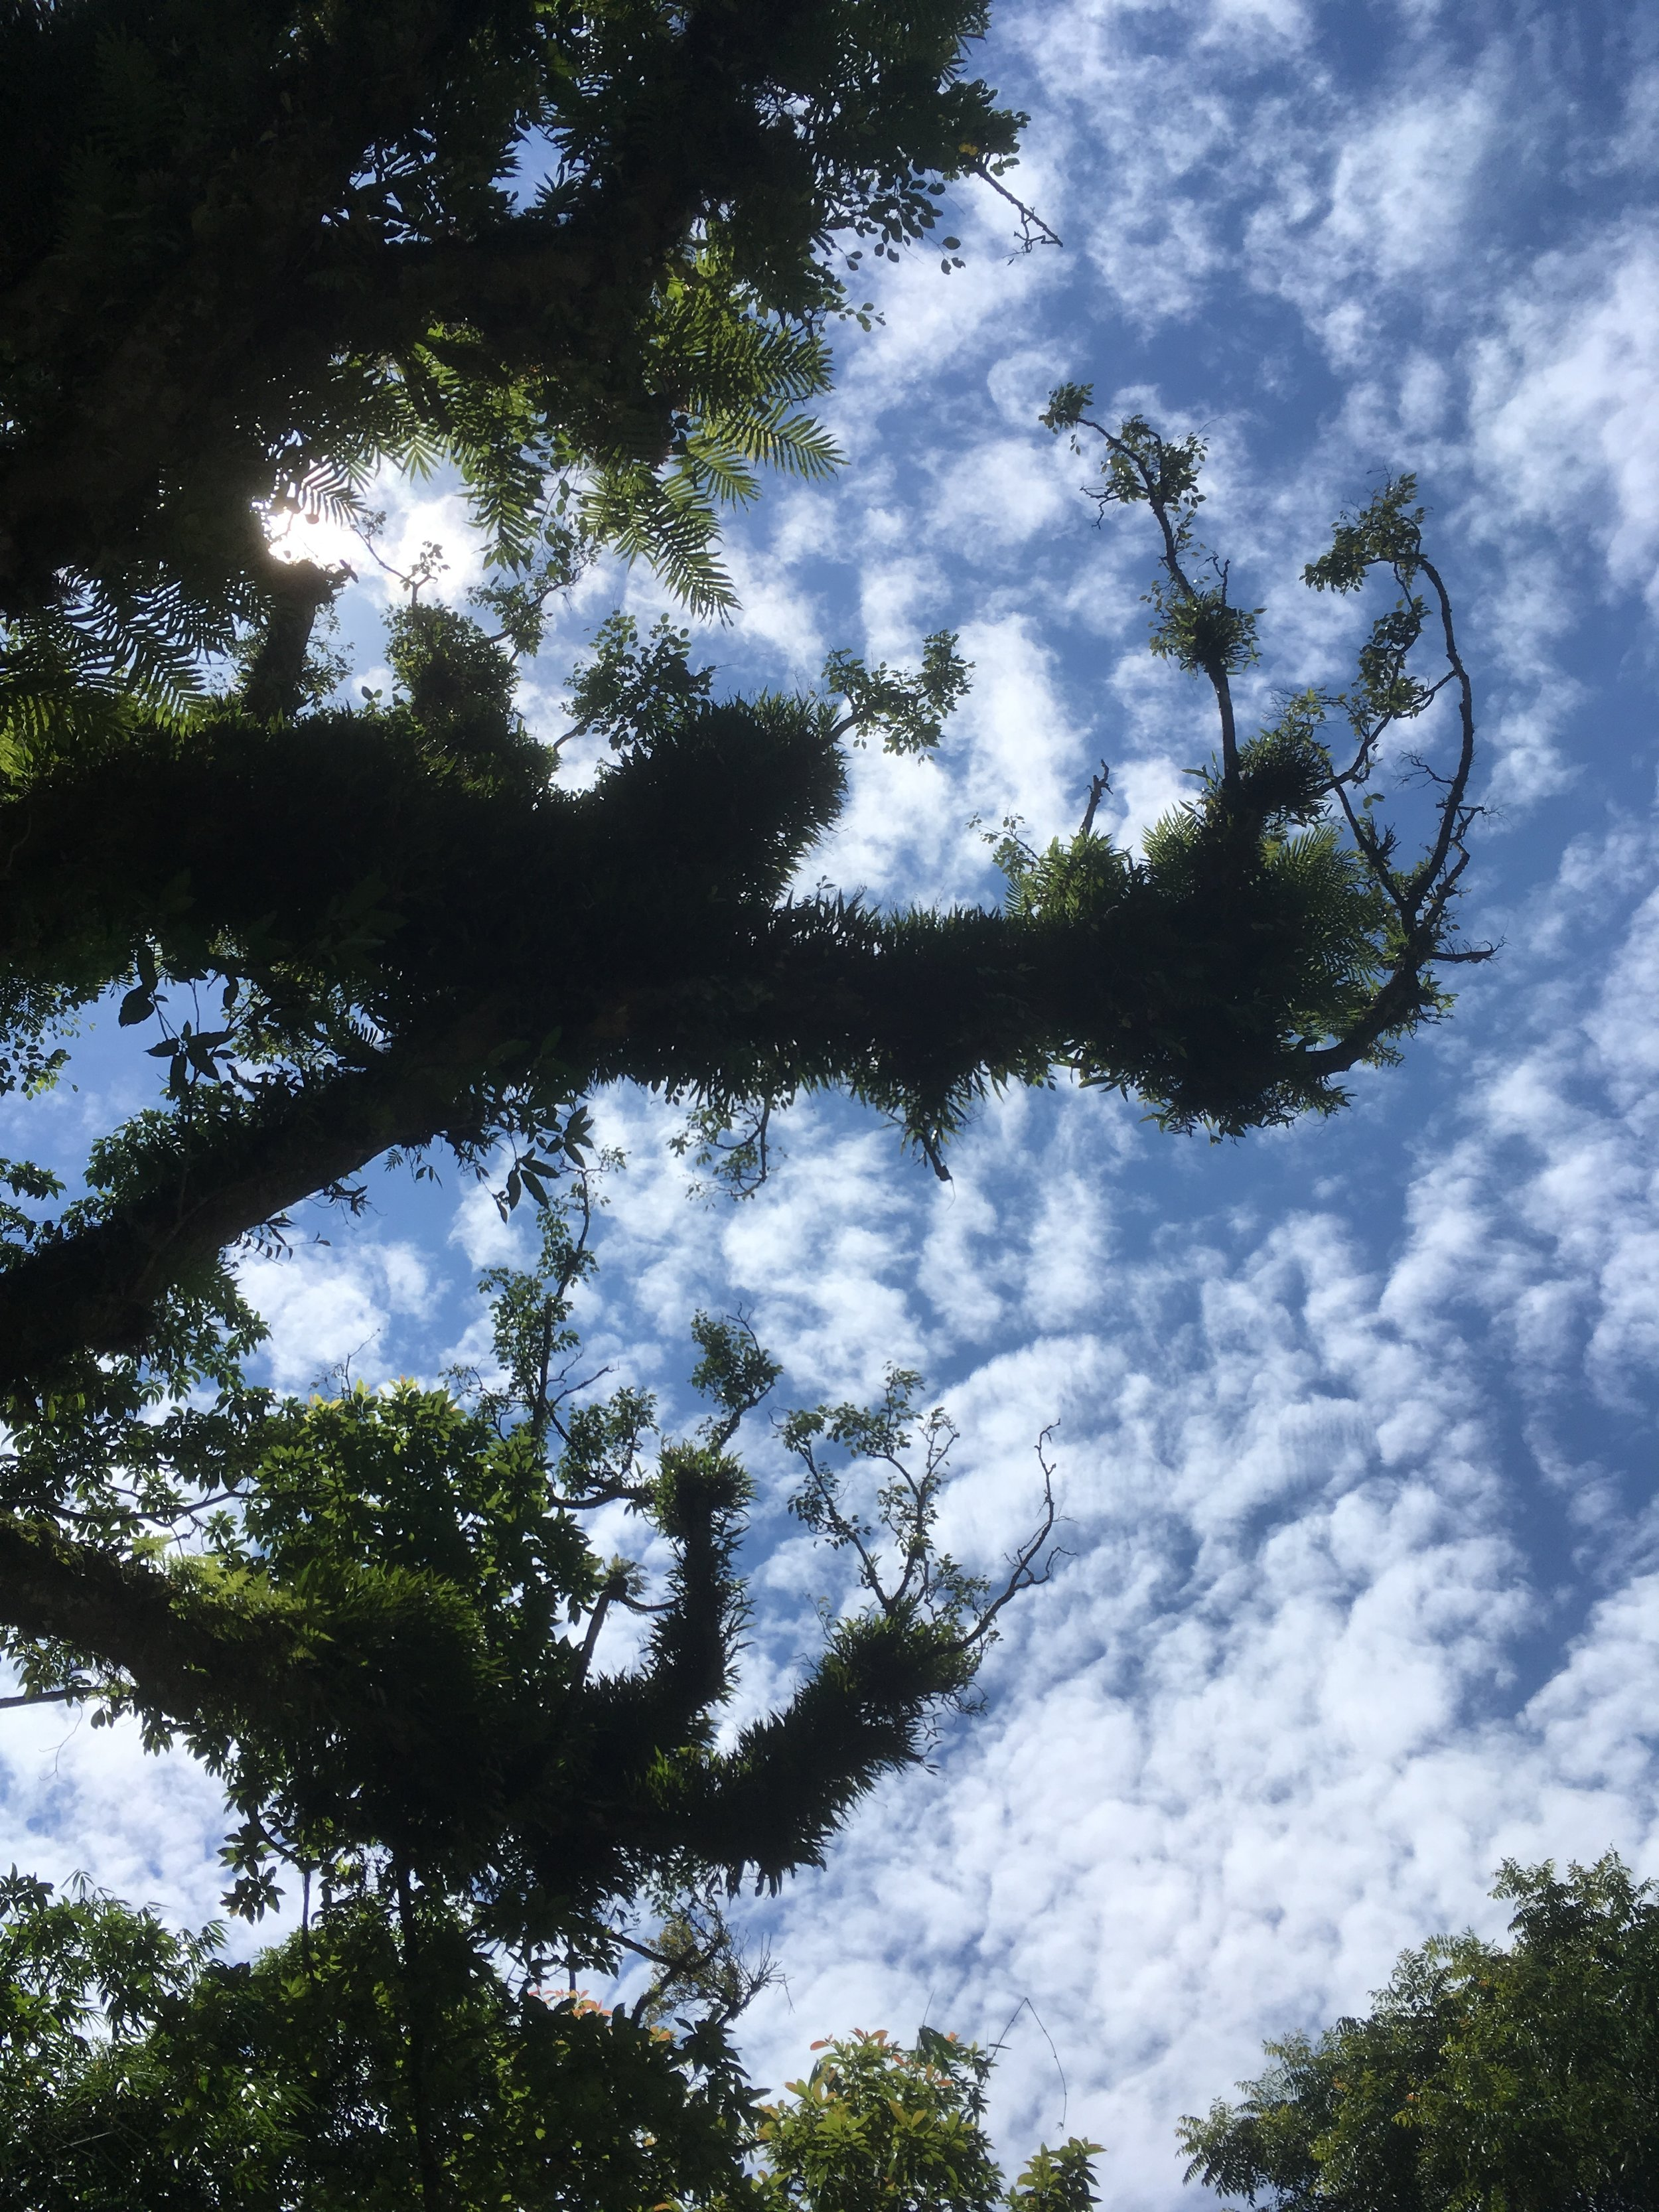 Epiphytes (plants that grow on other plants)